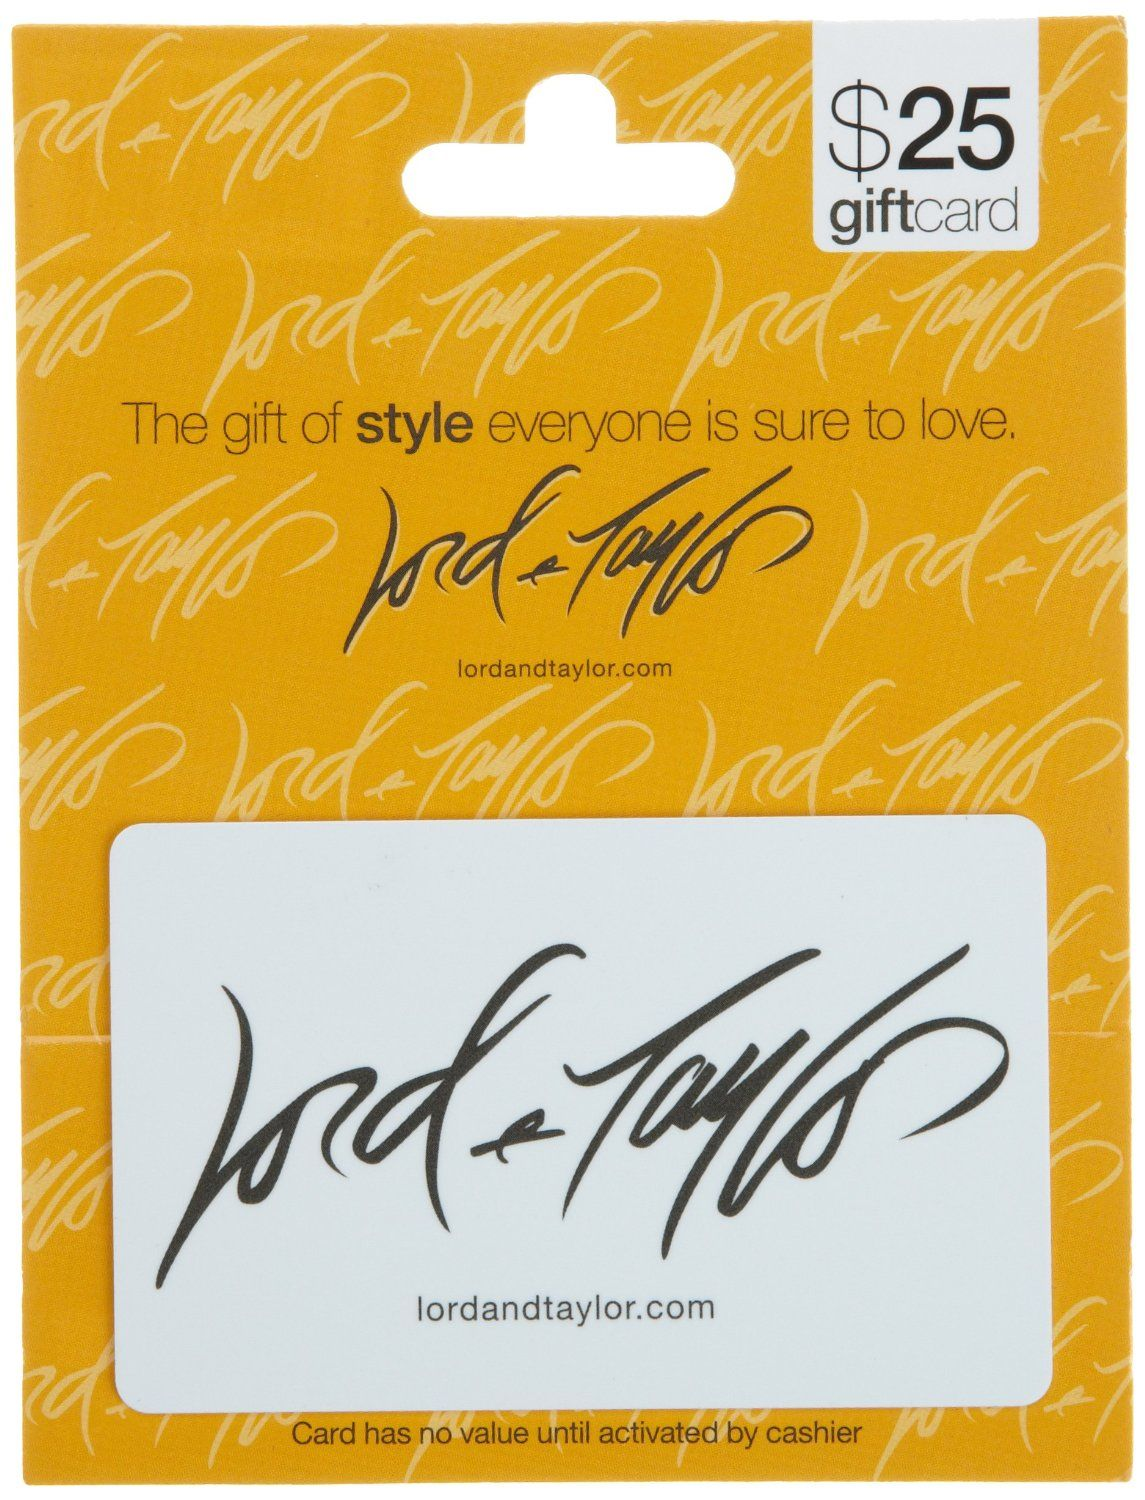 Lord taylor gift card 25 amazon lightning deal picks